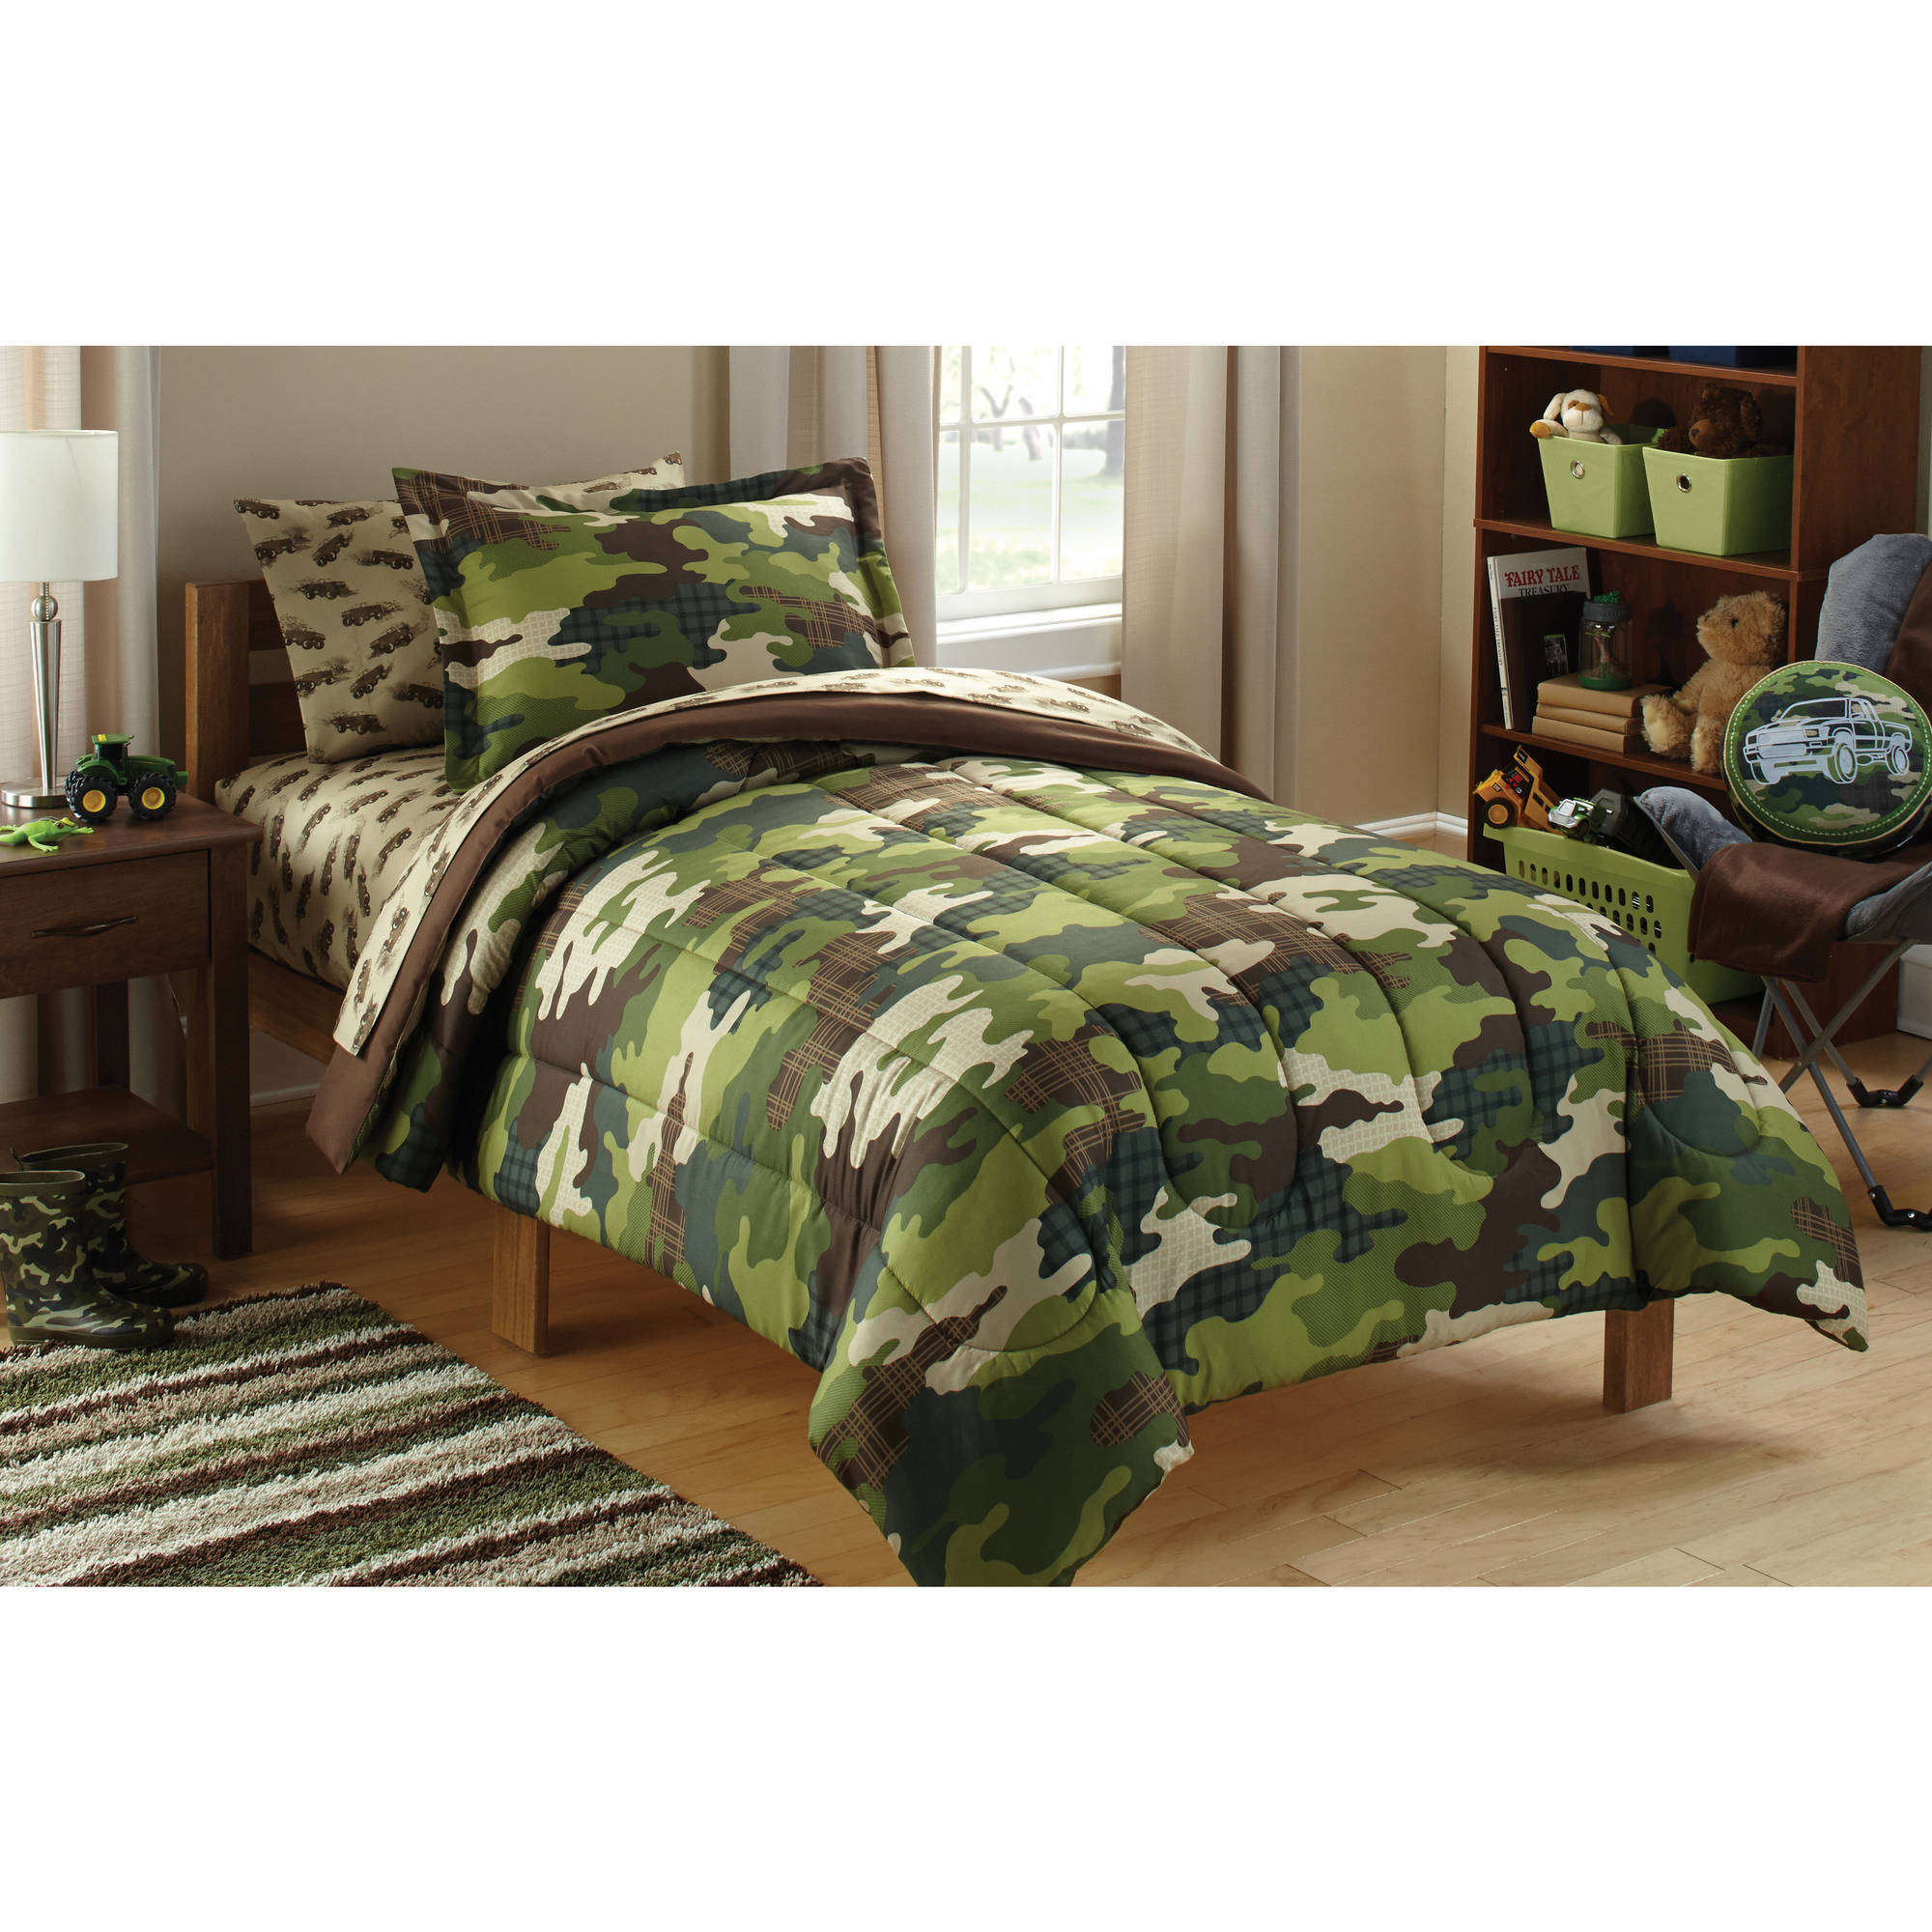 mainstays kids camoflauge coordinated bed in a bag walmartcom - Kid Sheets